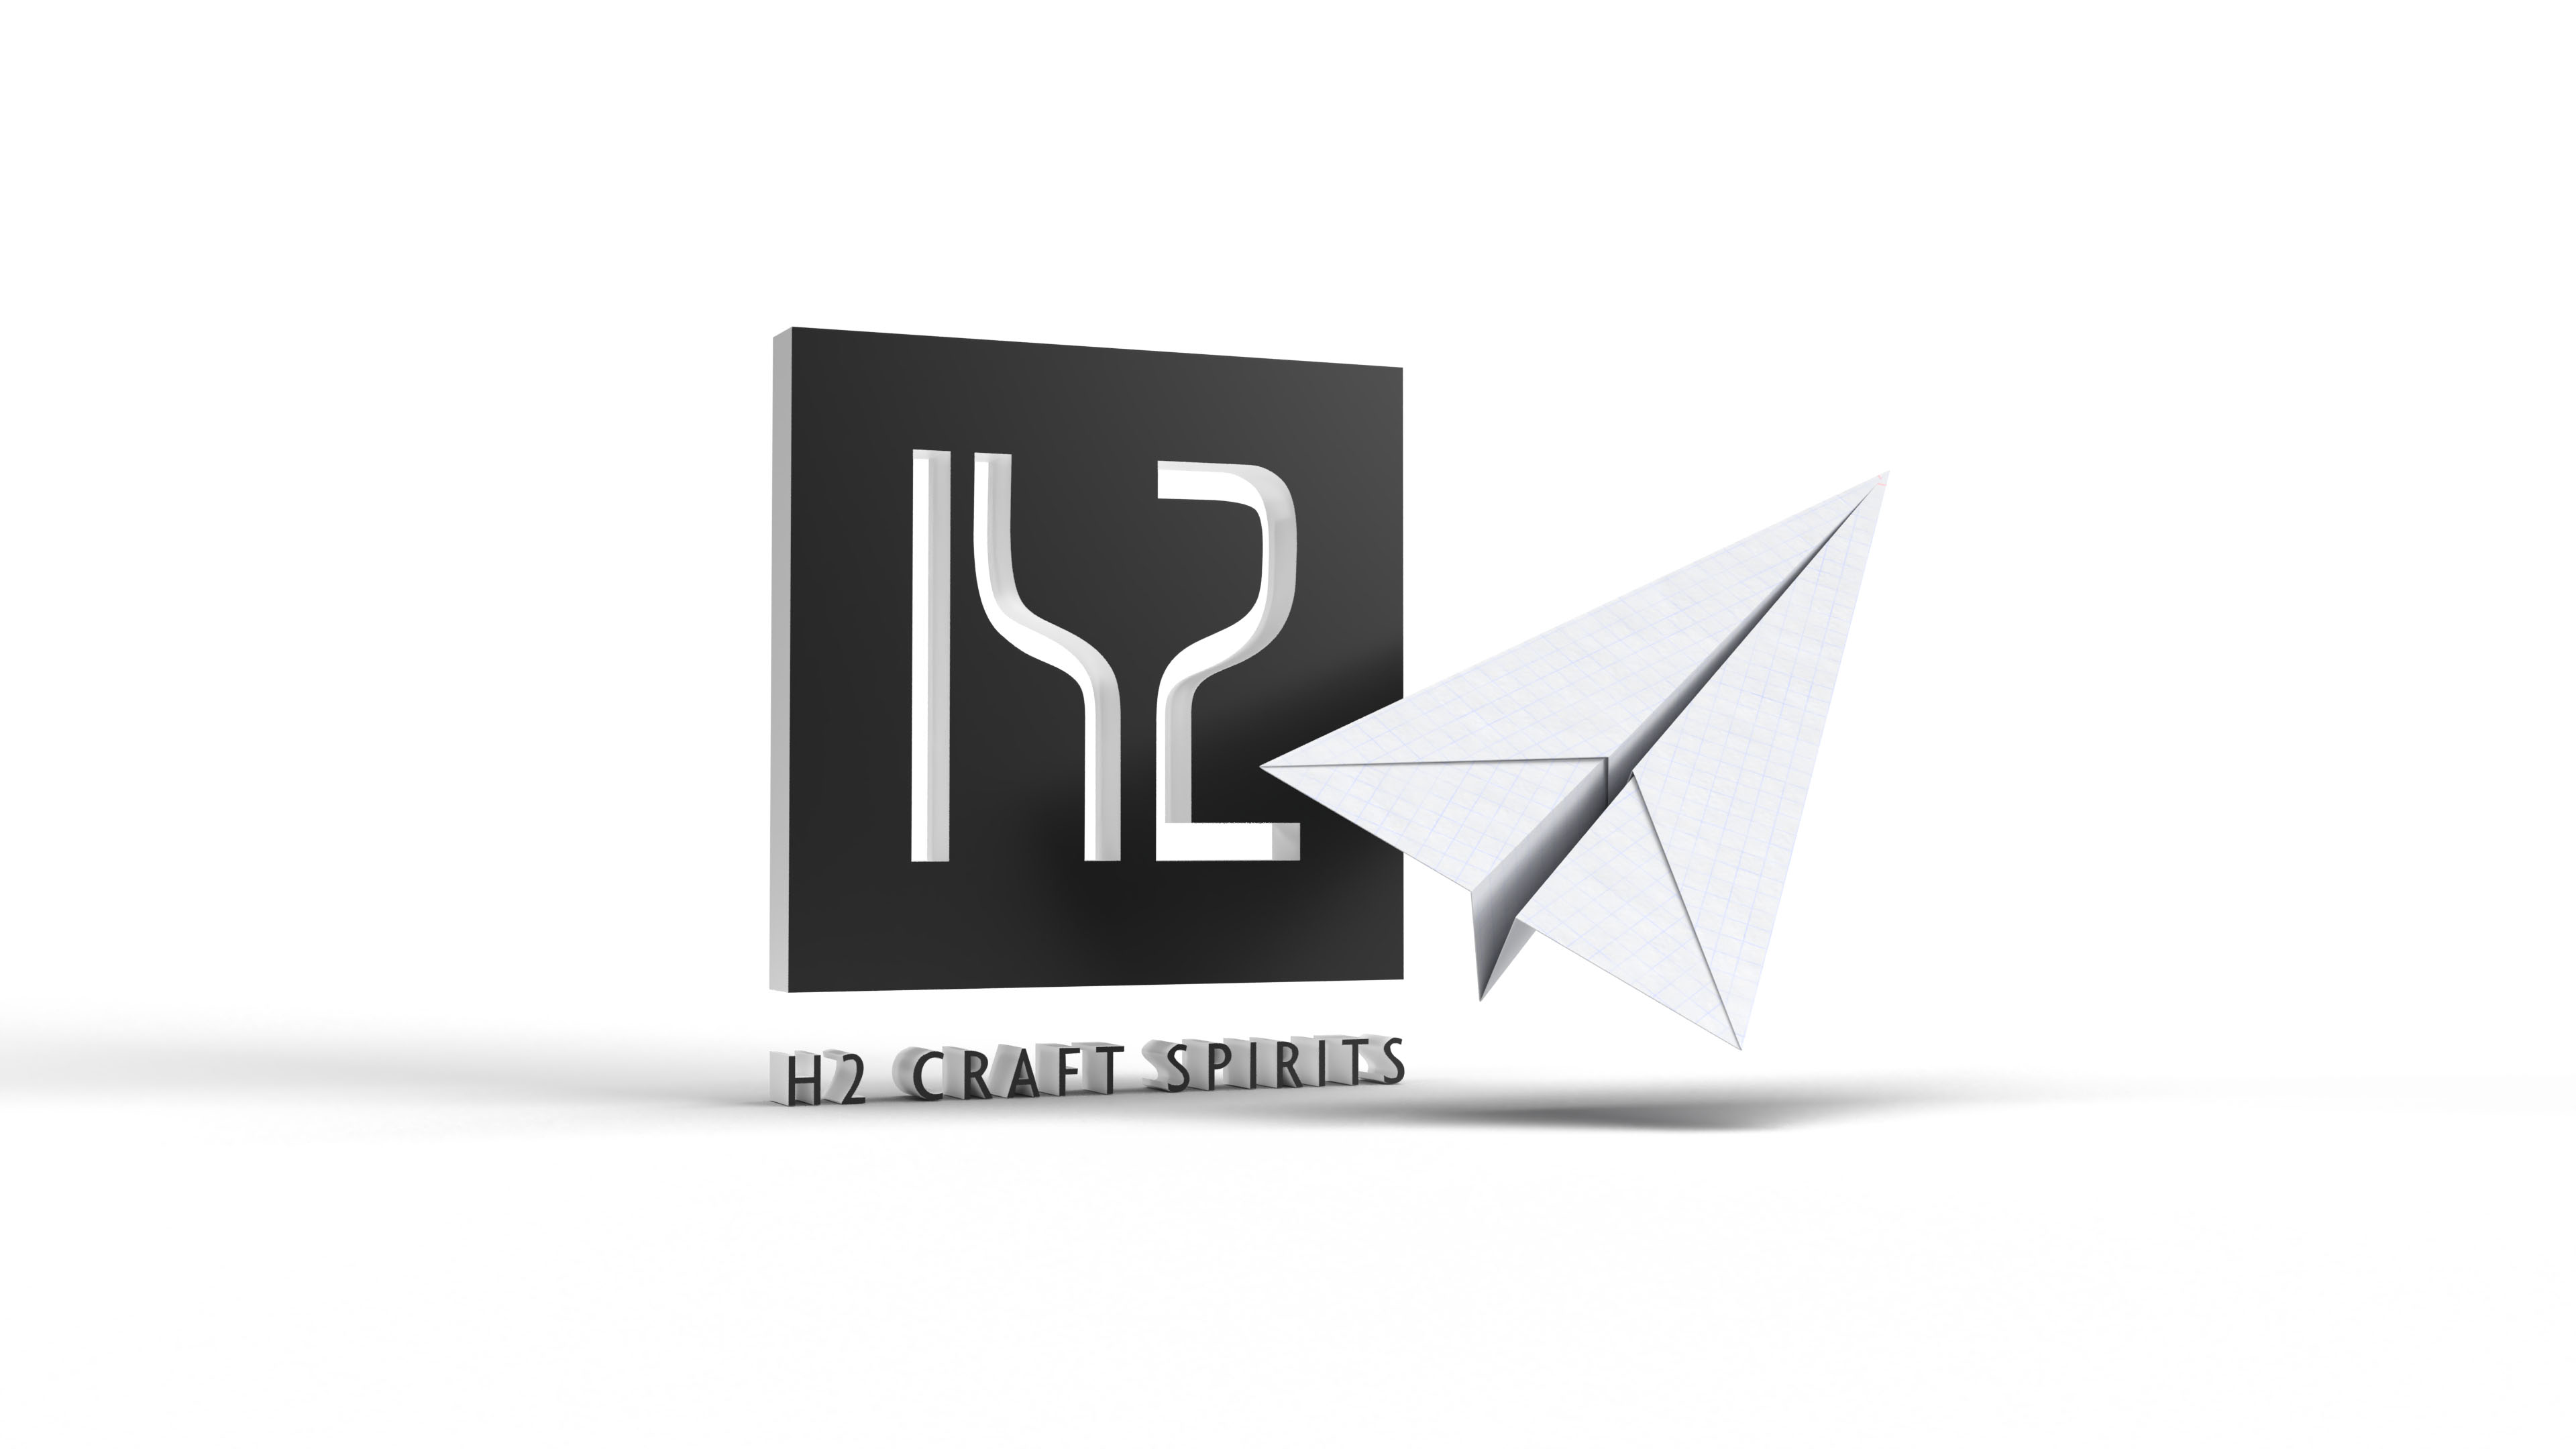 H2 Craft Spirits Logo and a Paper Airplane